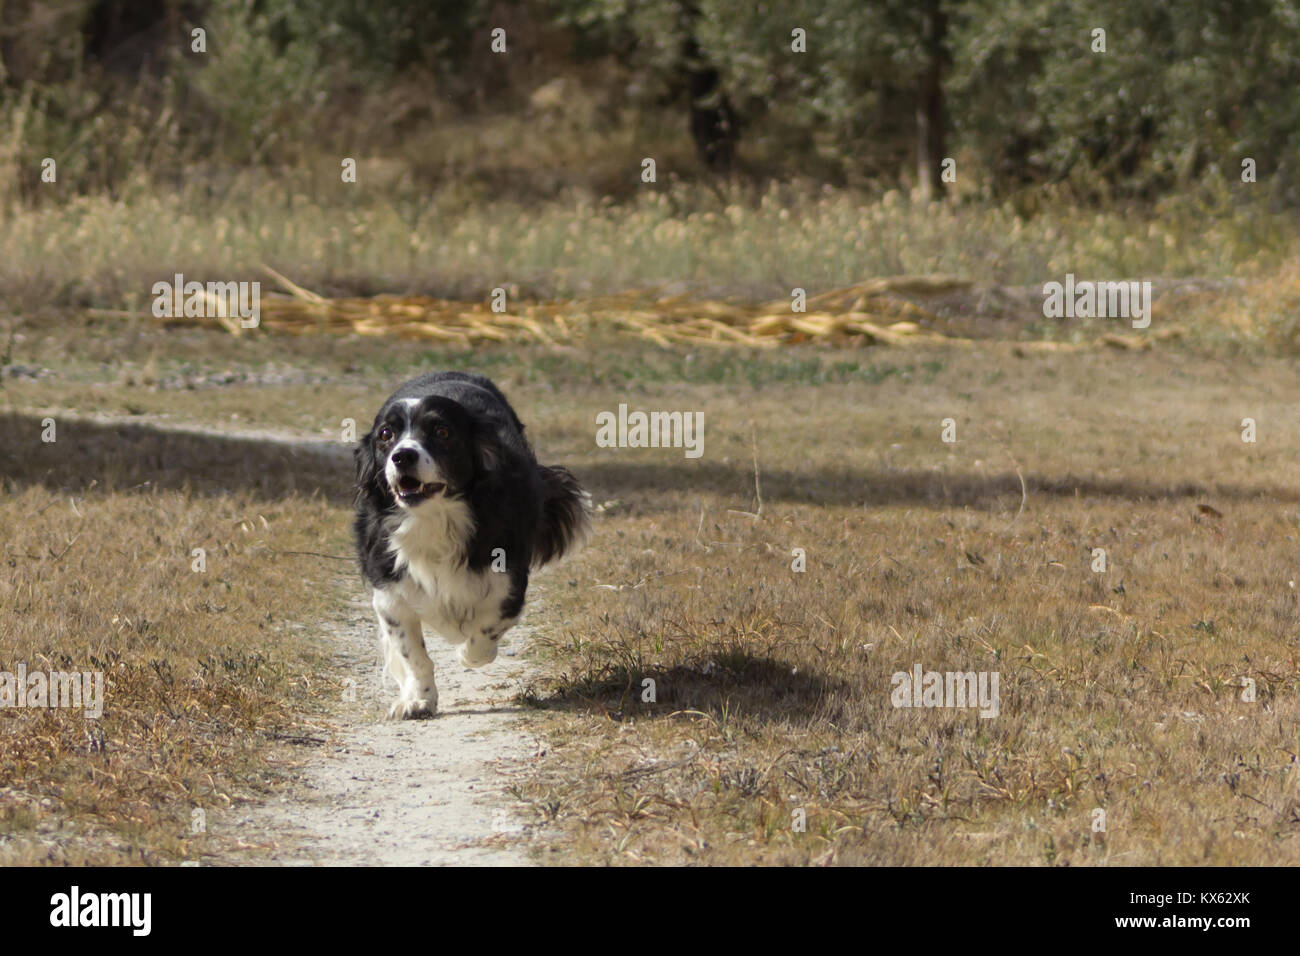 Canis lupus familiaris, Dog Cross Breed, adult female taken in November 2017 in Andalucia Spain, - Stock Image